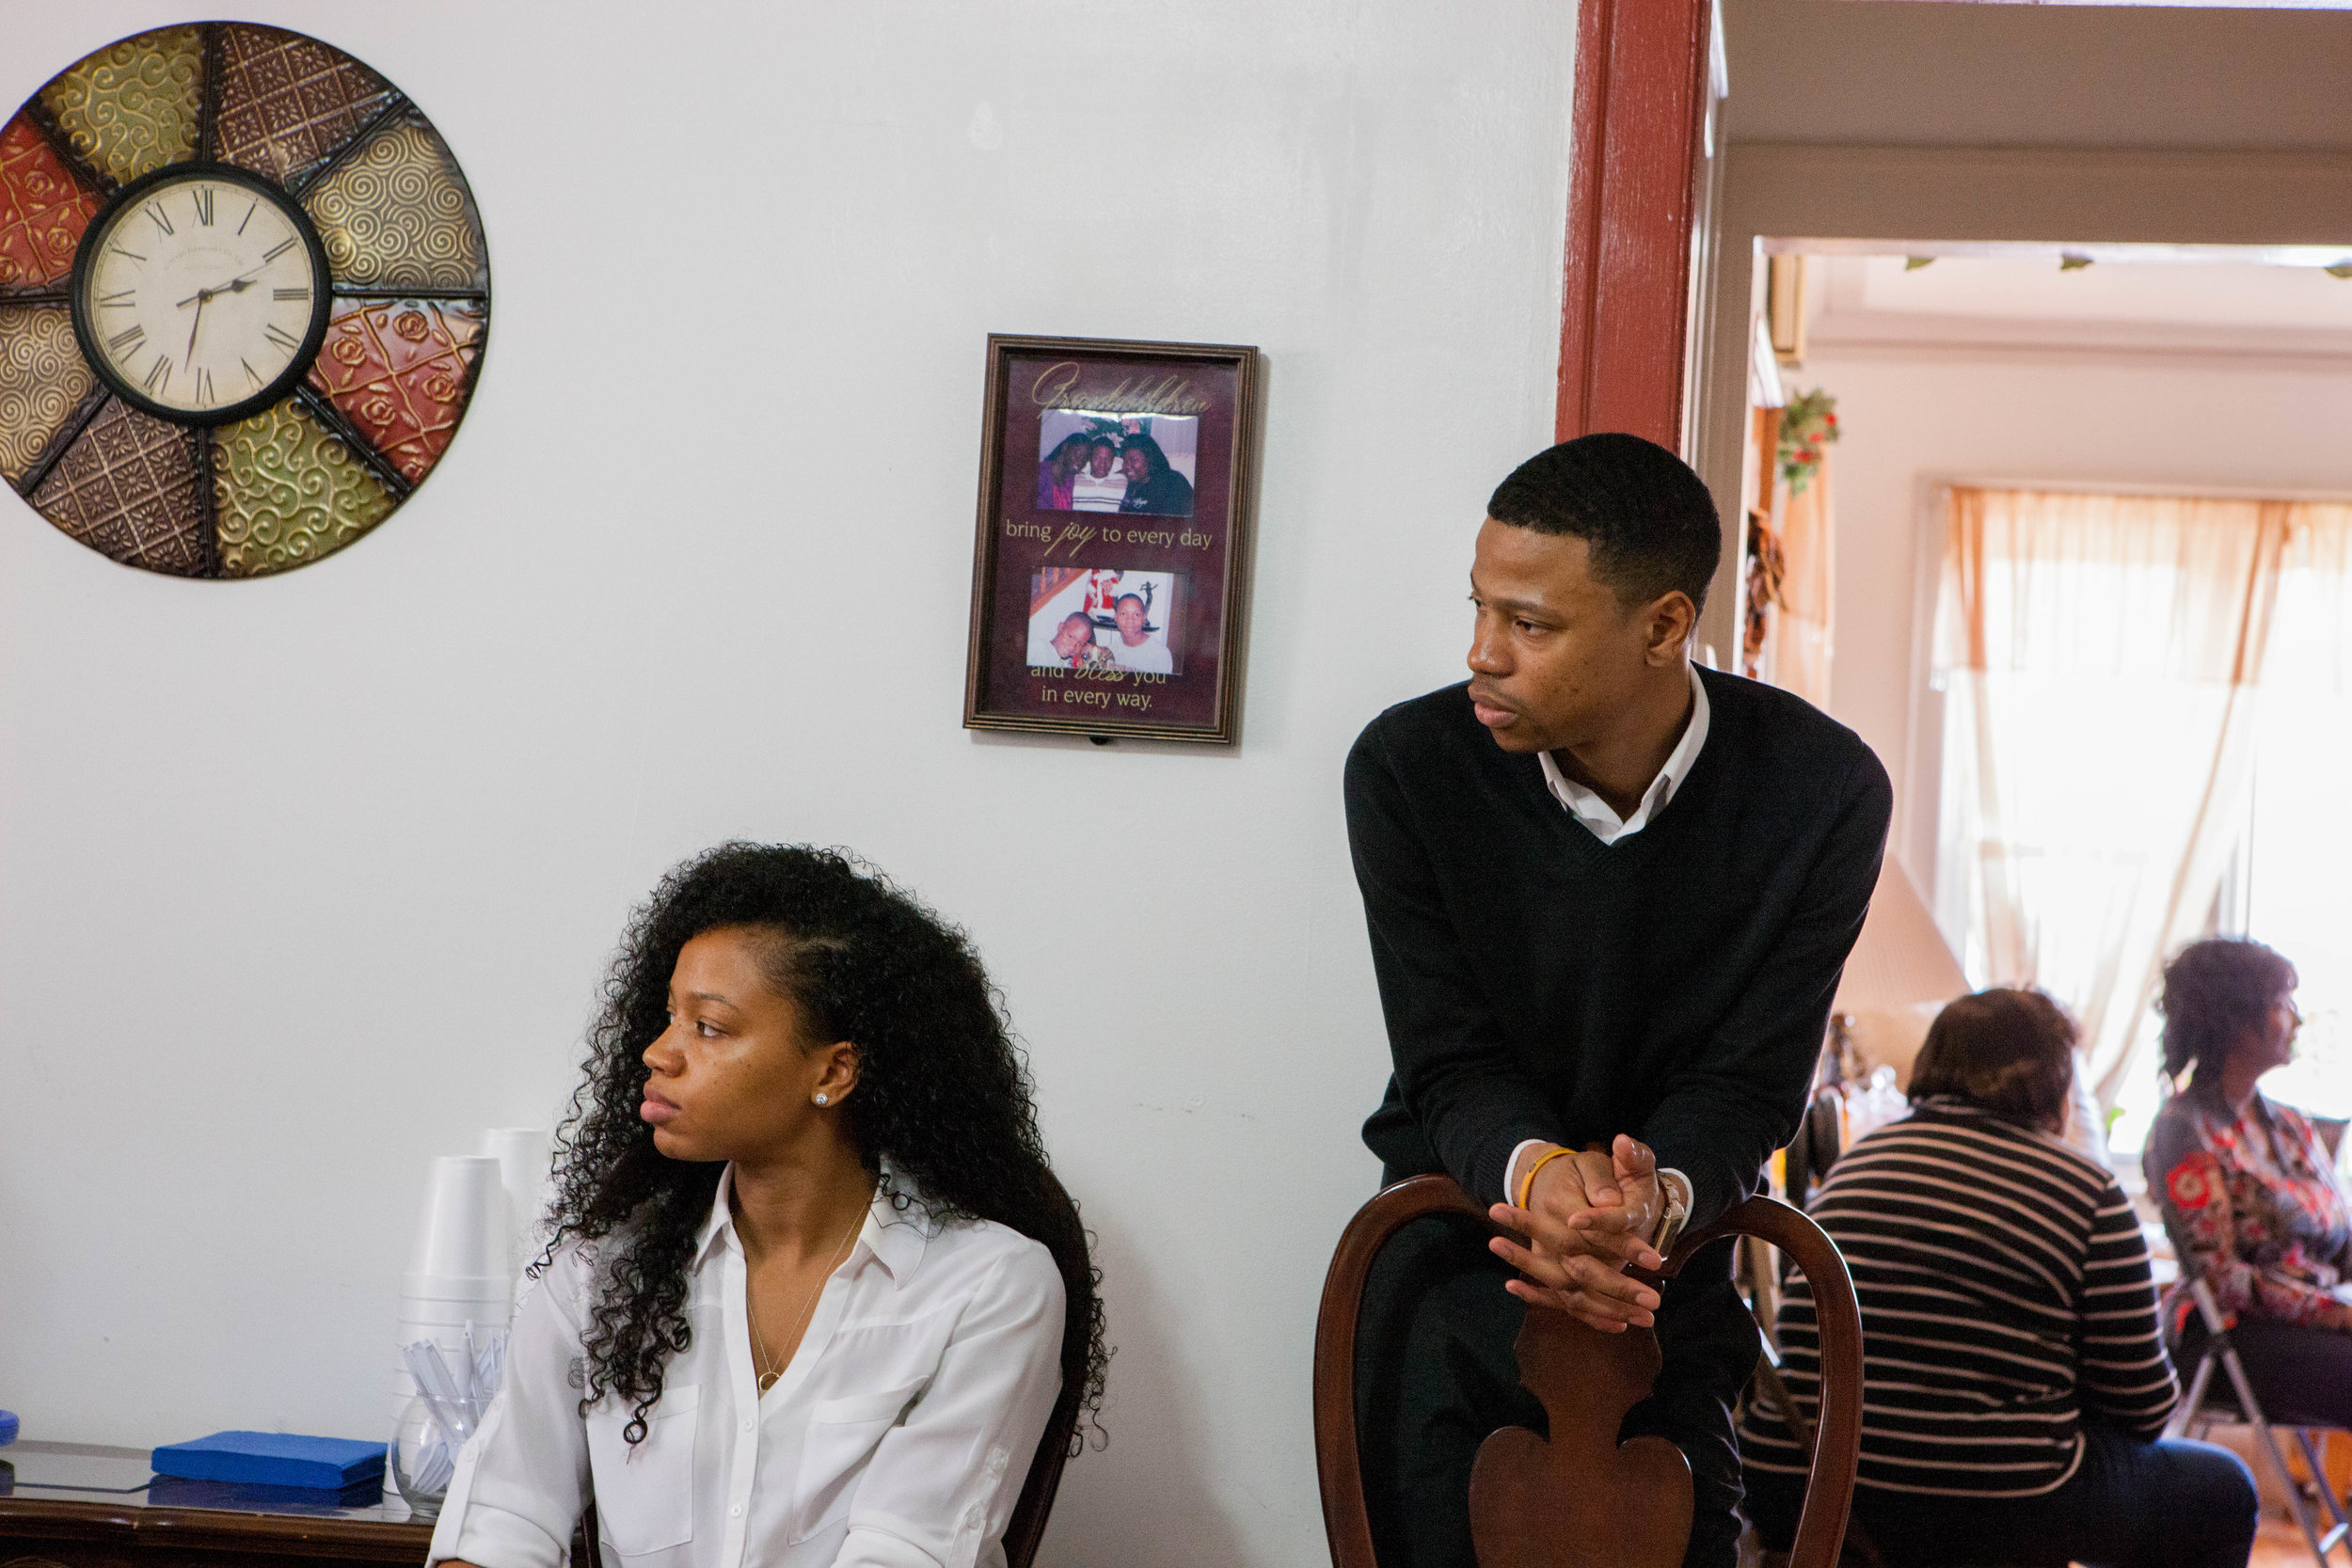 Robert and Brittani listen to an individual off camera at a fundraiser at Robert's mother's home.